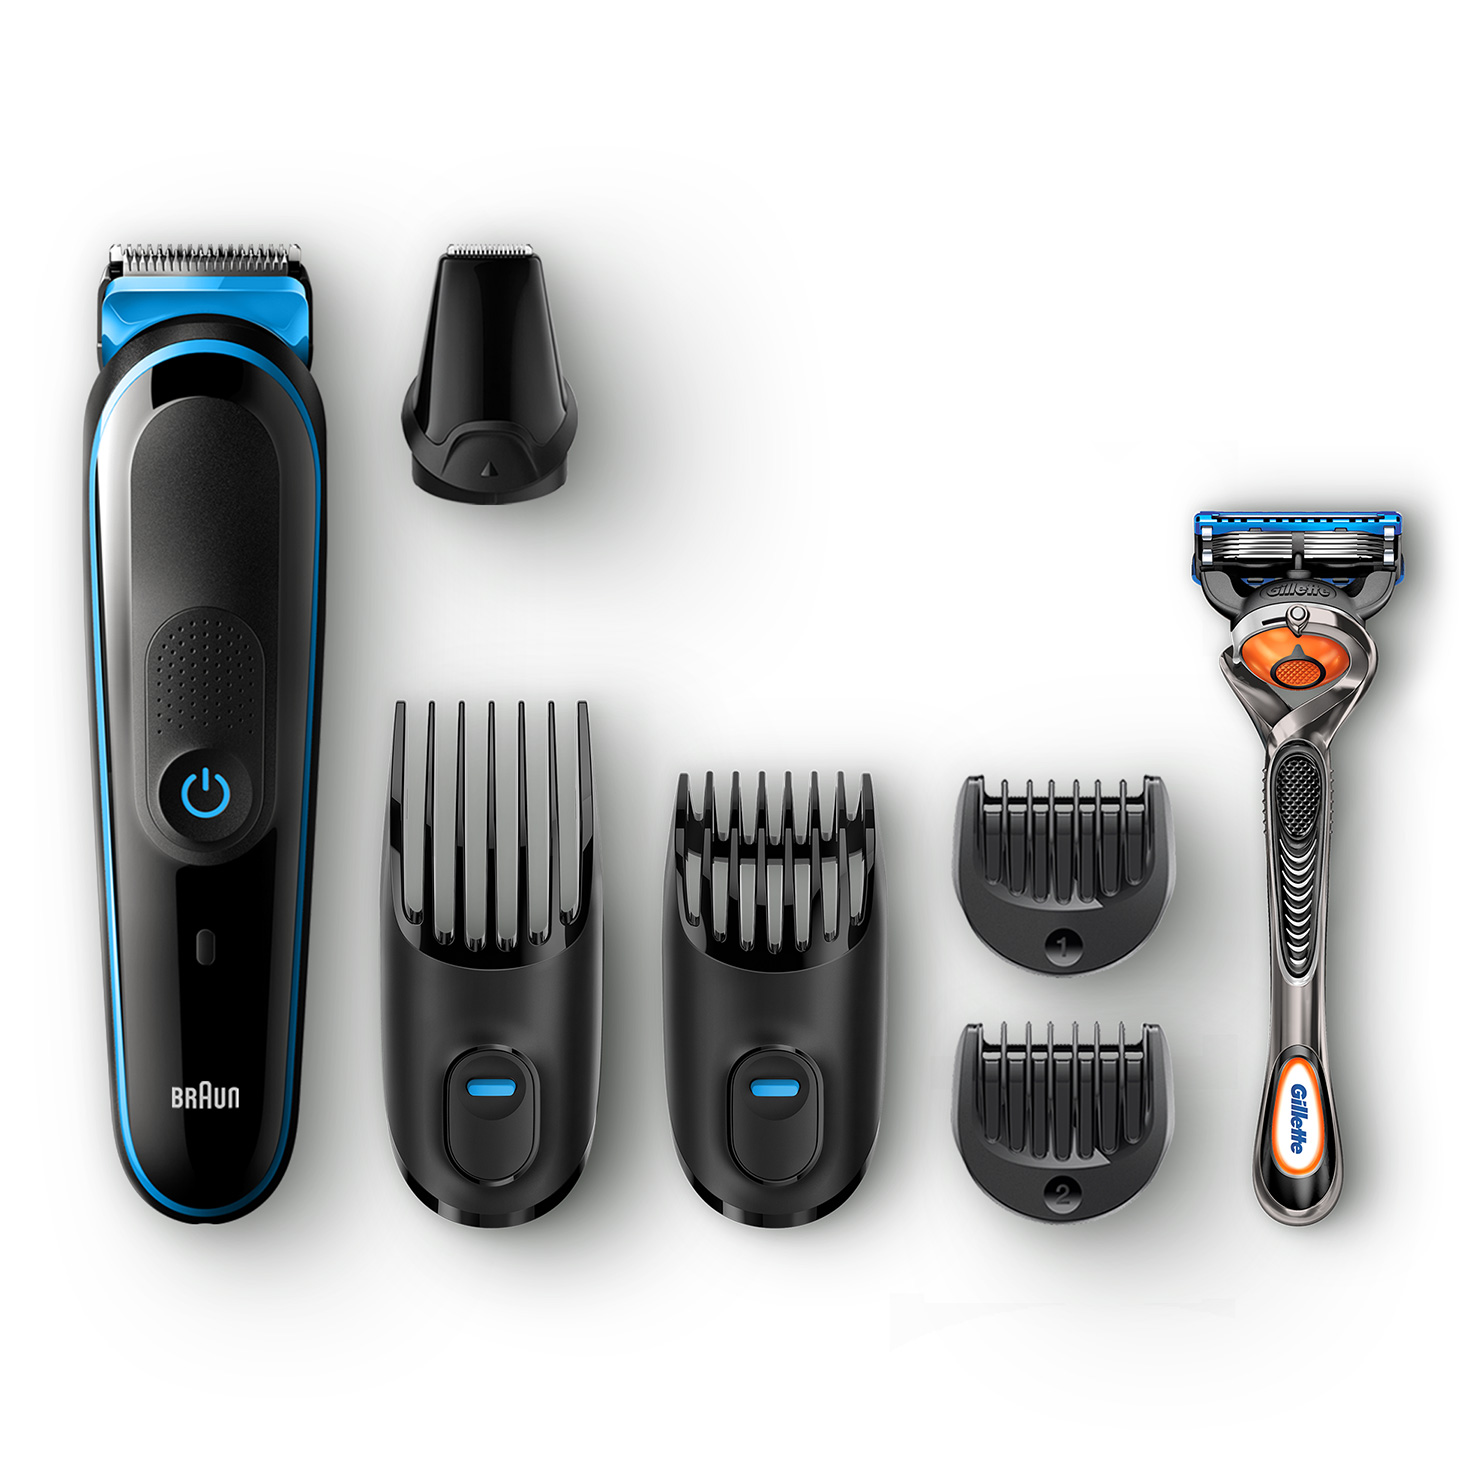 Braun All-in-one trimmer MGK5045 - What´s in the box